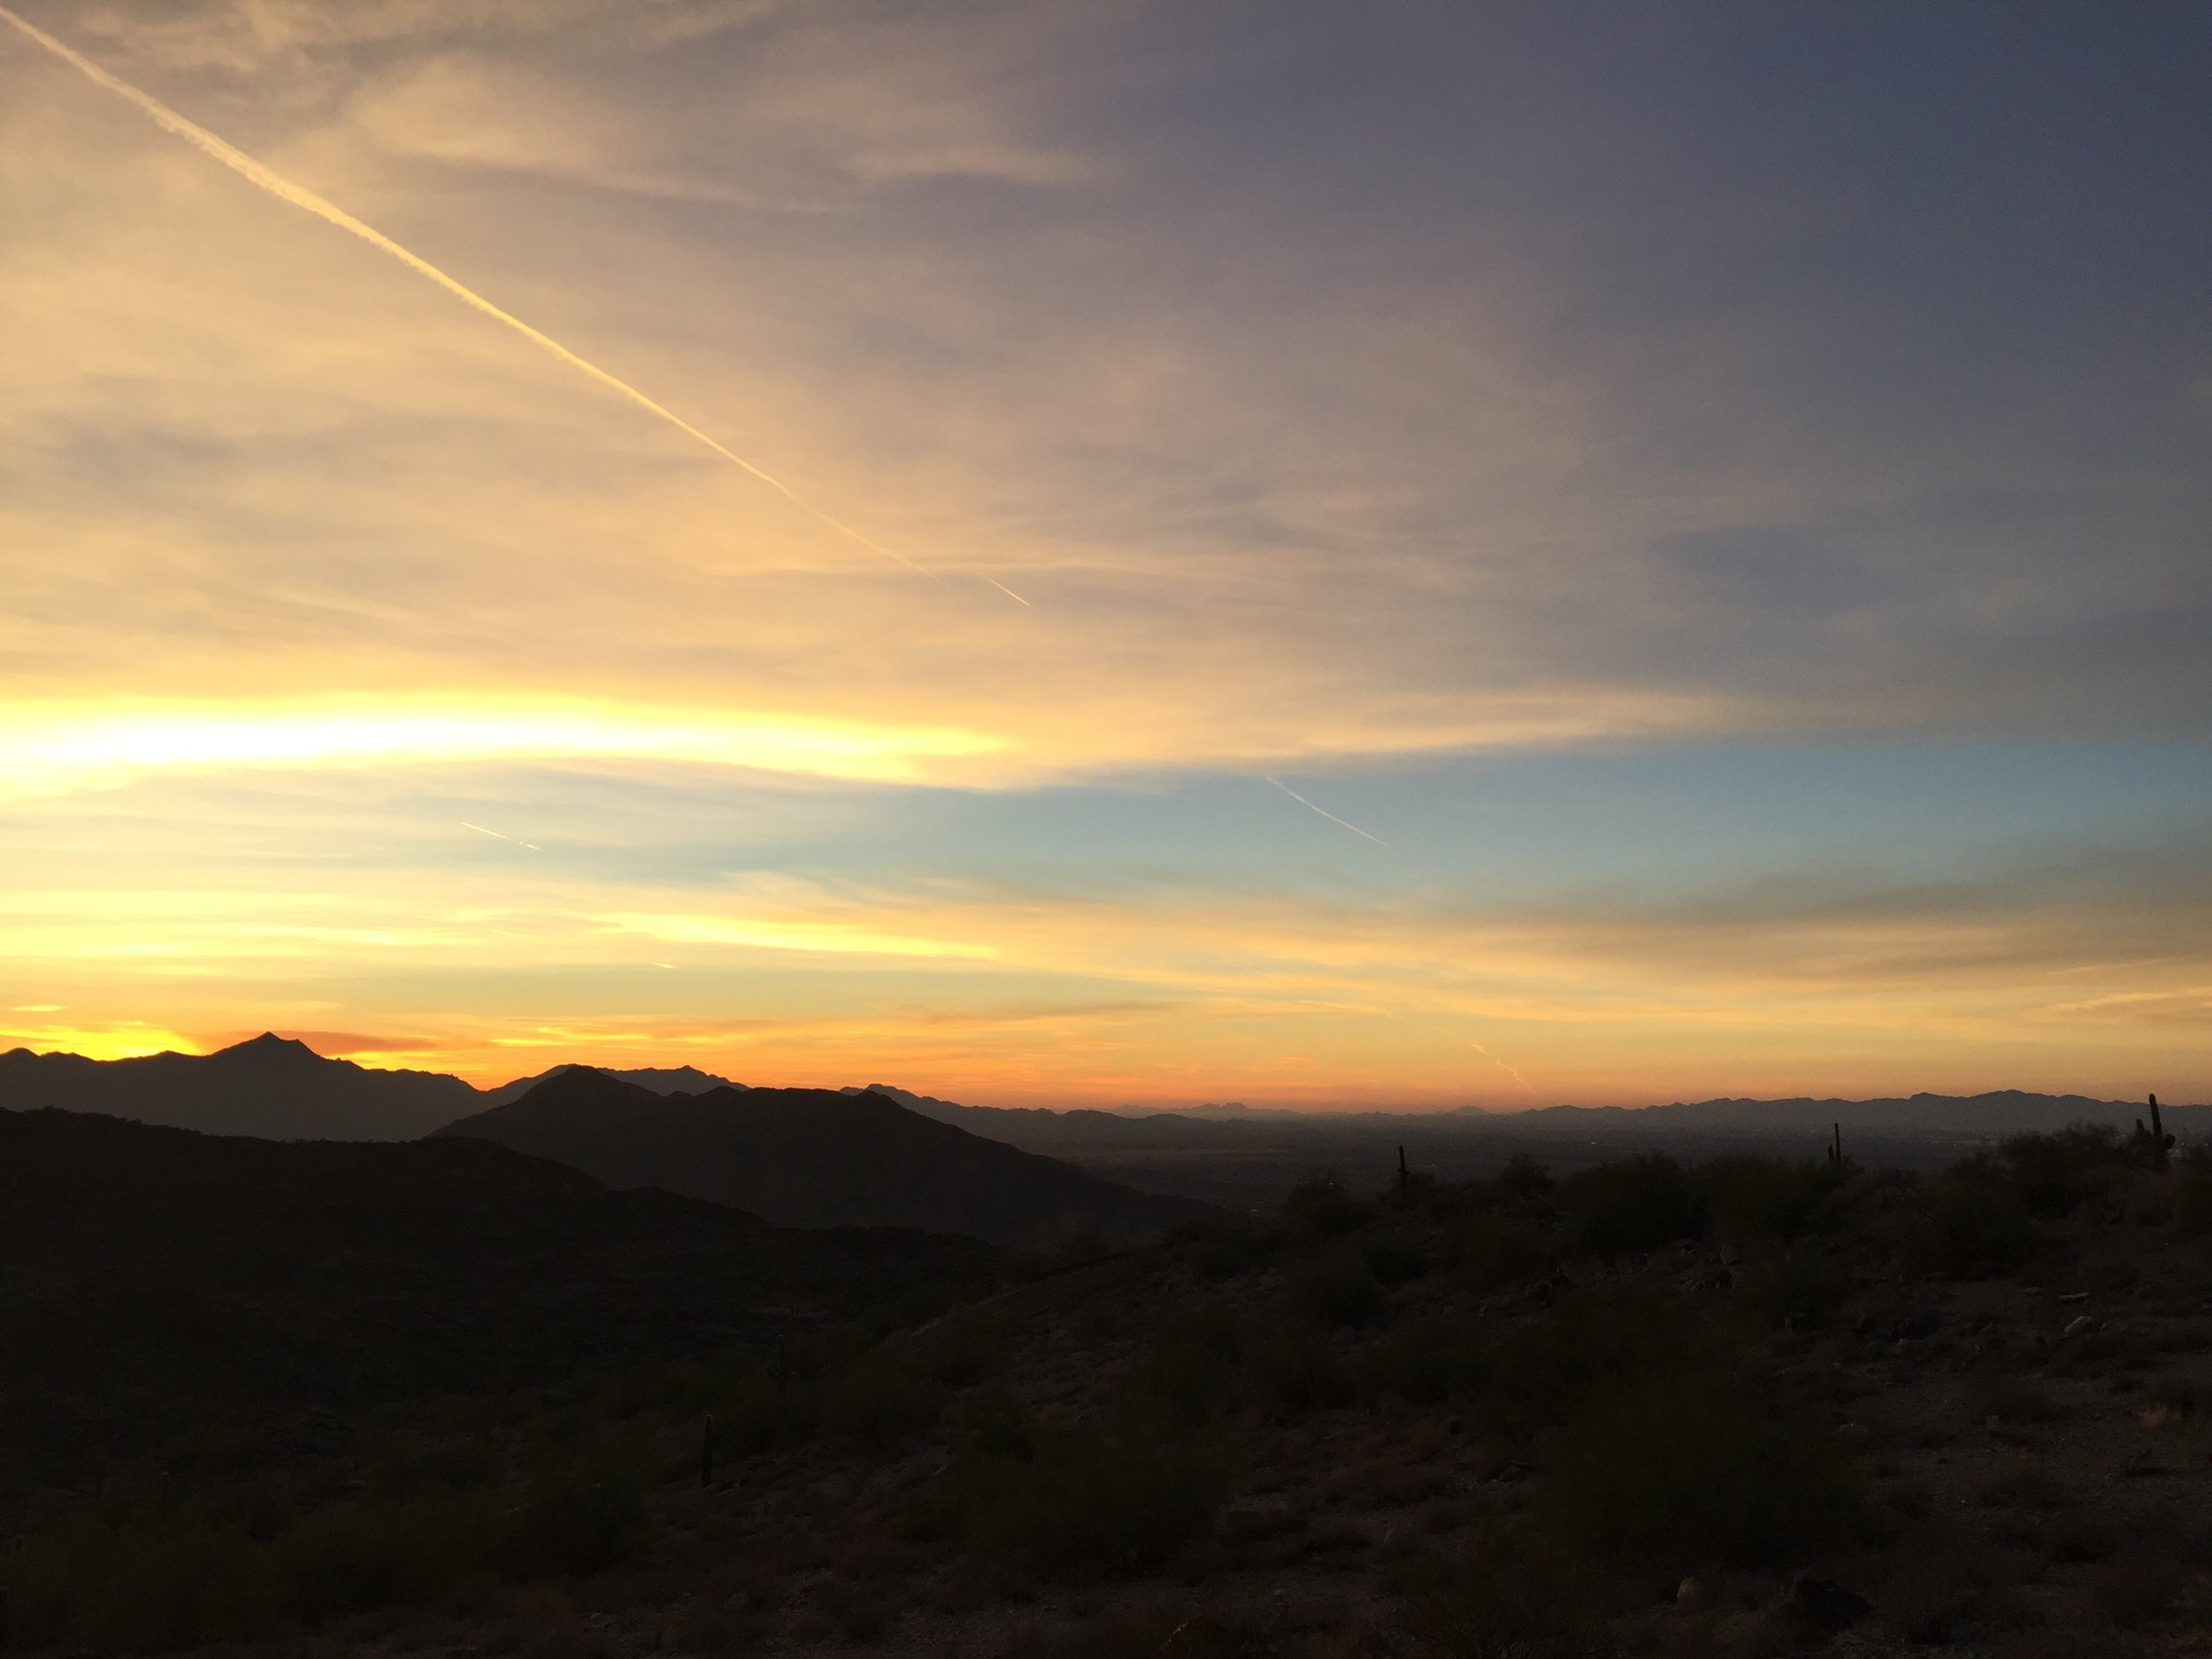 South Mountain Sunset: The Build